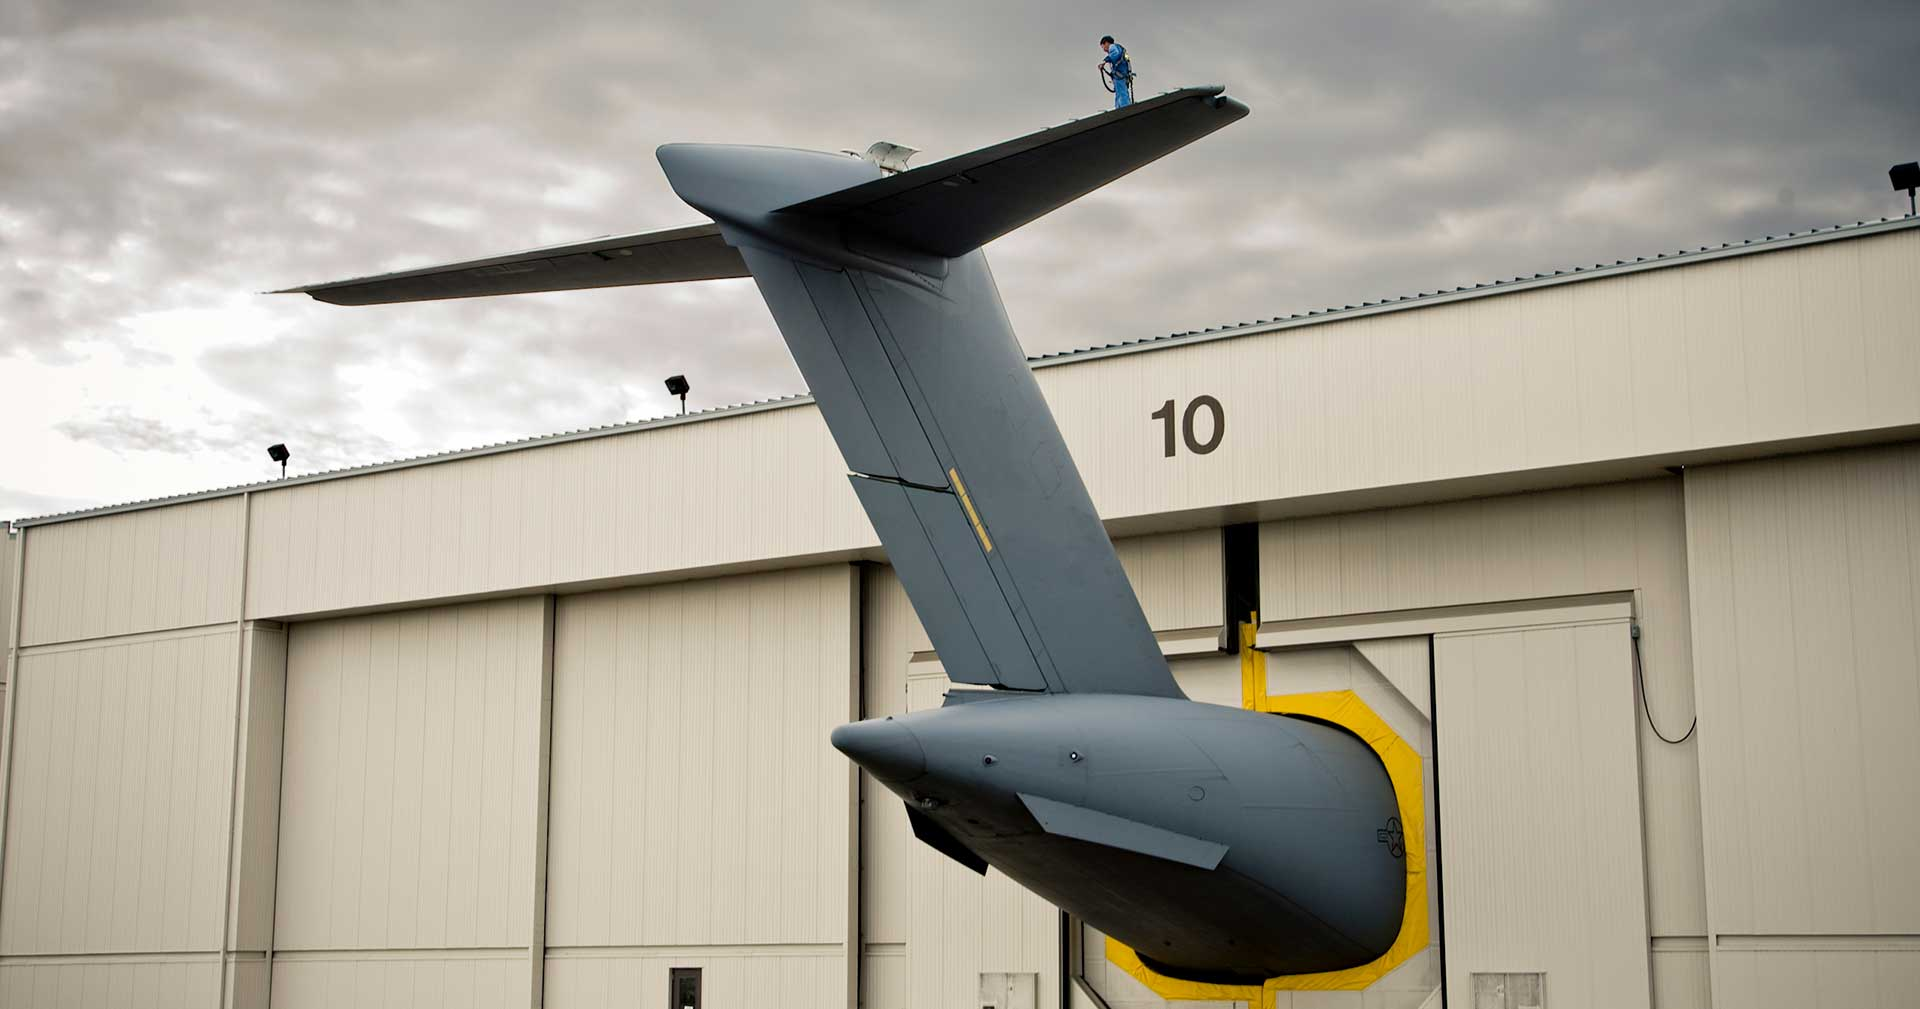 Gravitec Systems' Aircraft Fall Protection Solutions